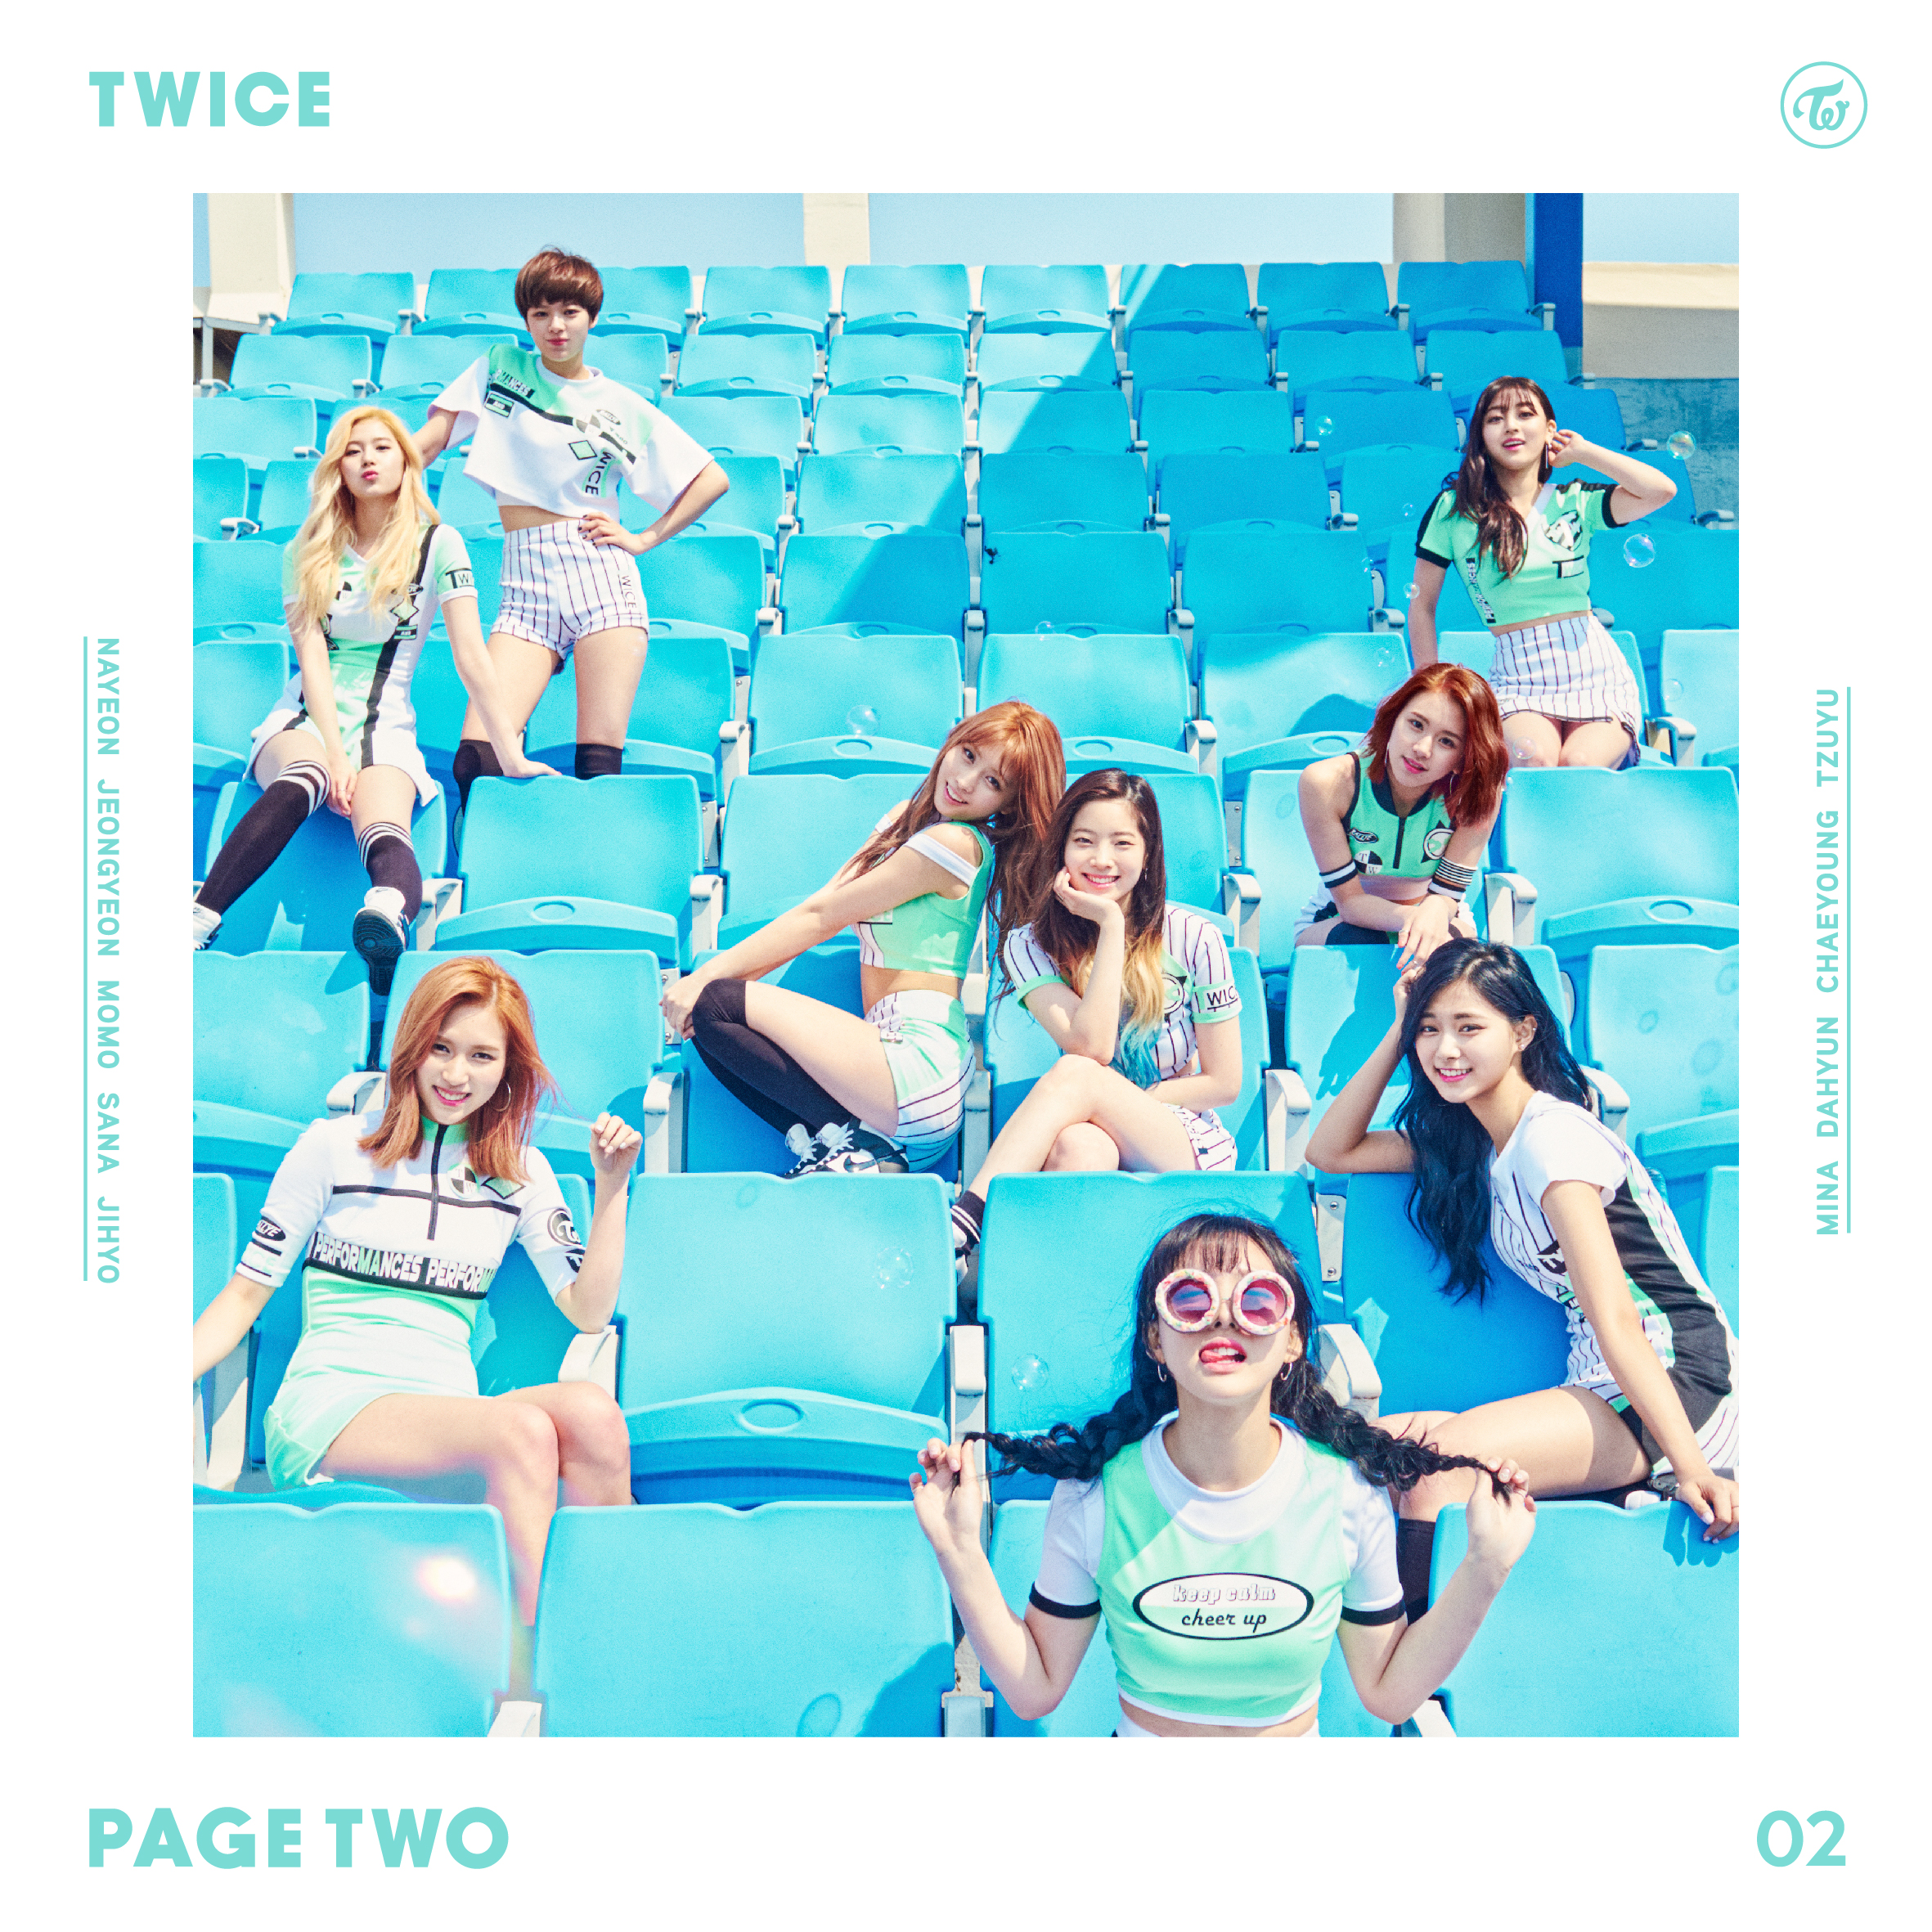 20160425.17 Twice - Page two cover.jpg